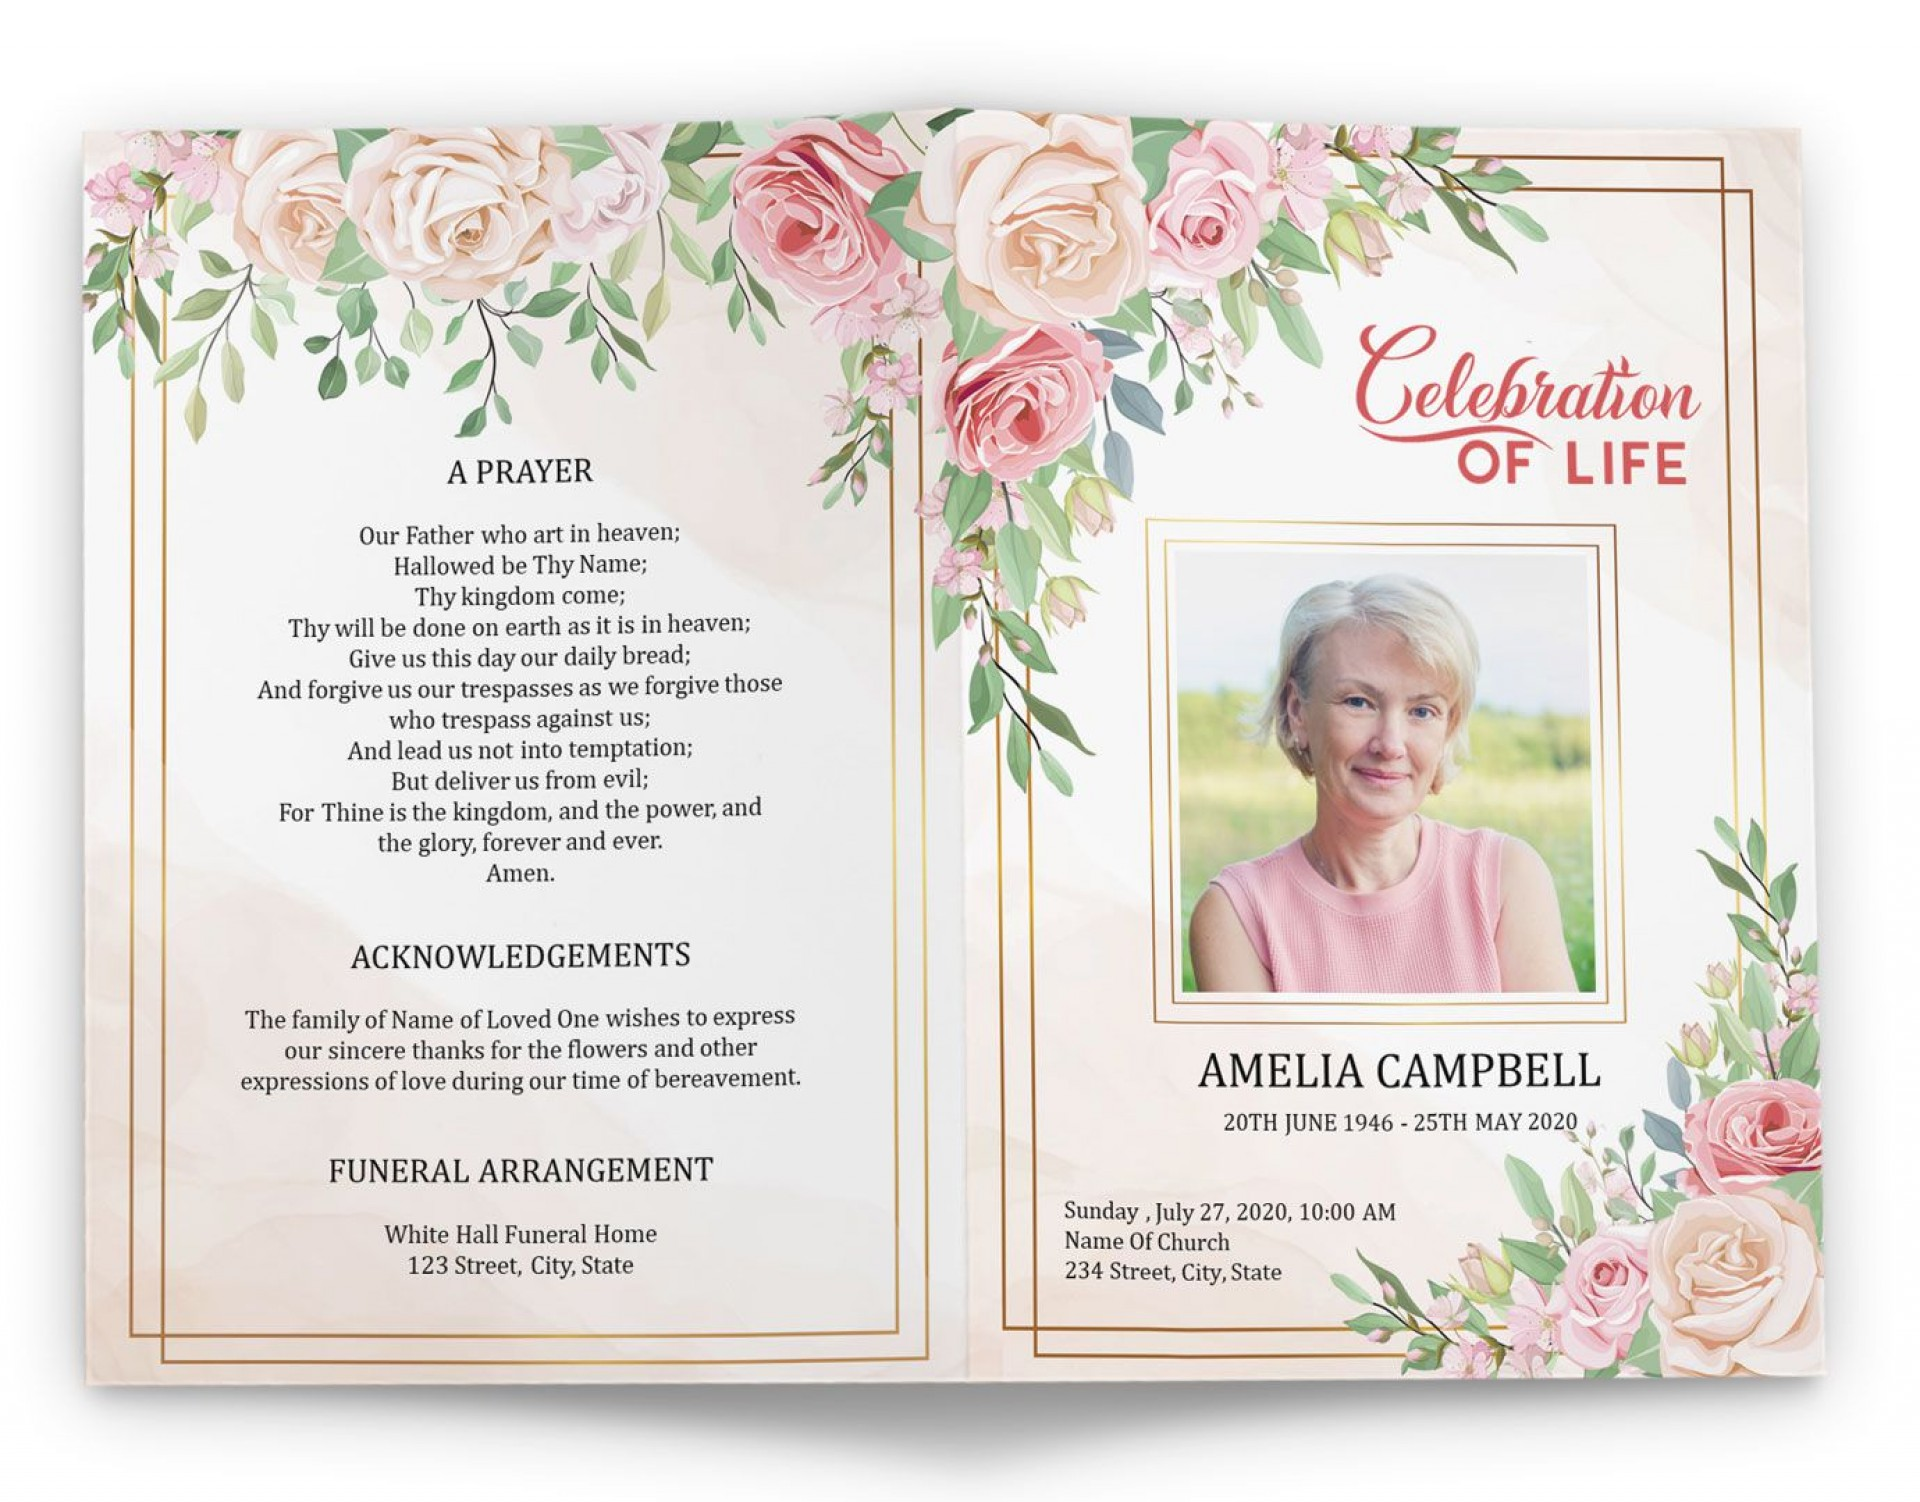 004 Unbelievable Free Editable Celebration Of Life Program Template High Resolution 1920